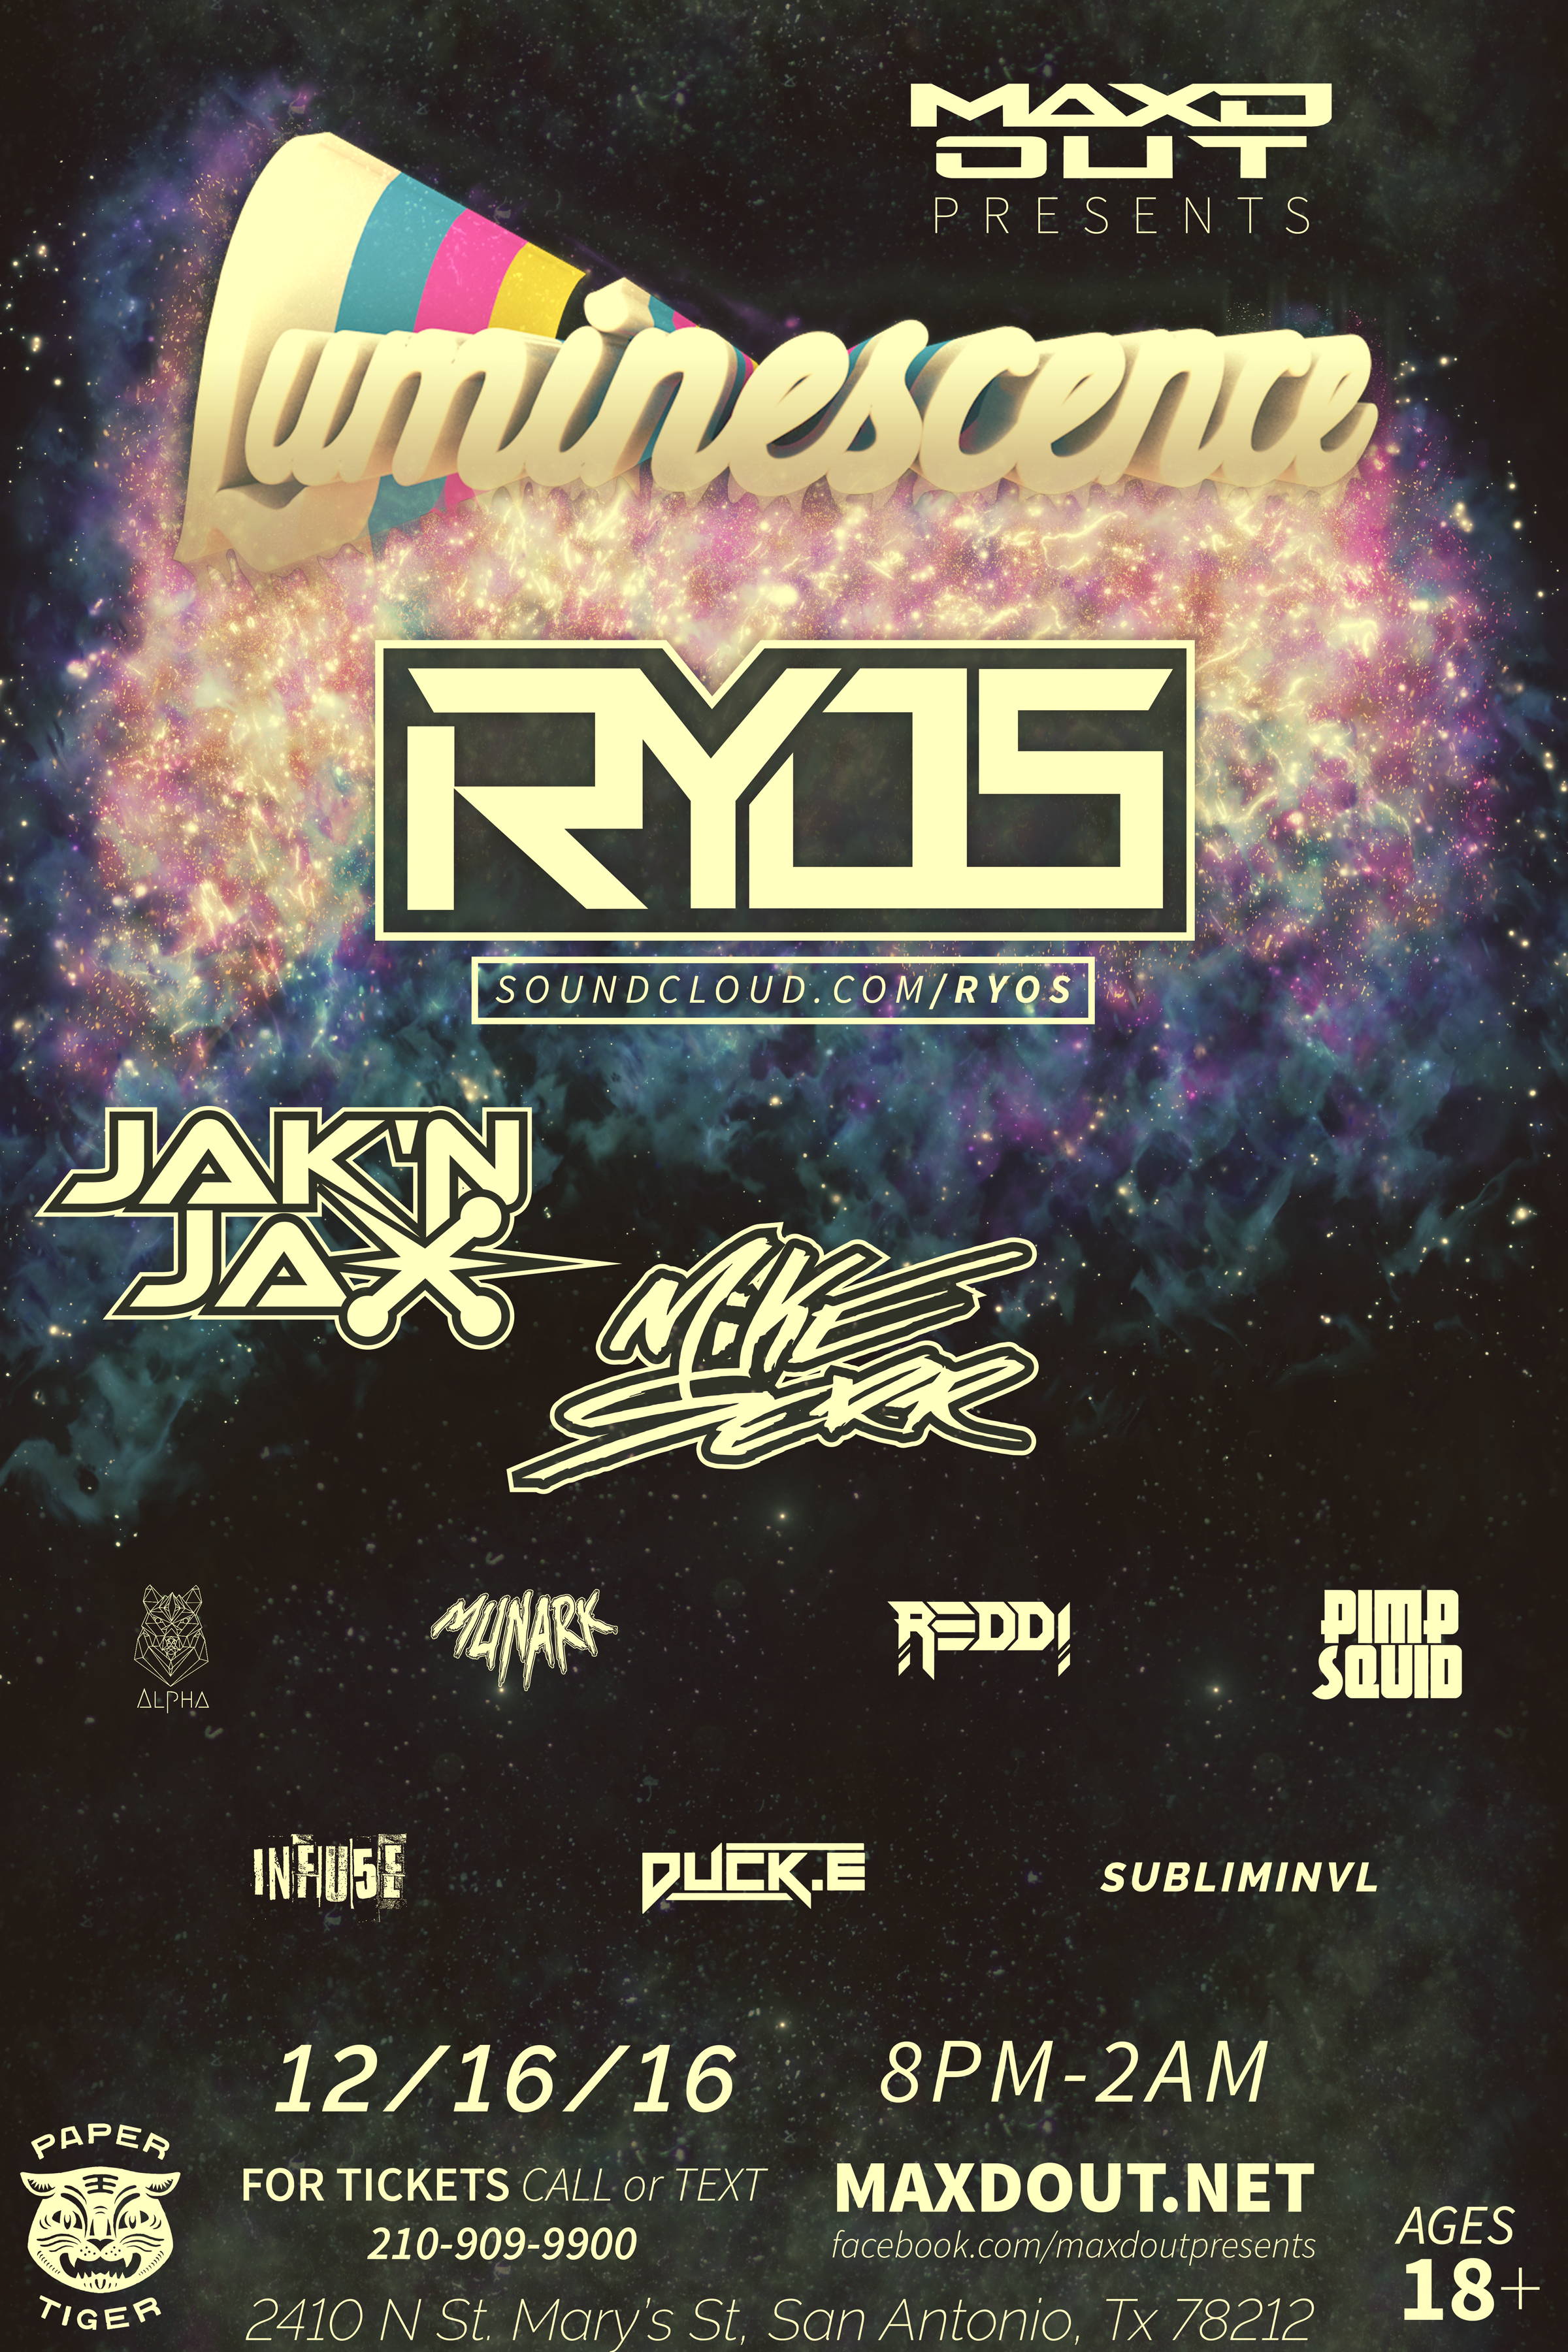 LuminescenceFlyer-WithLineup-RESIZED50.png